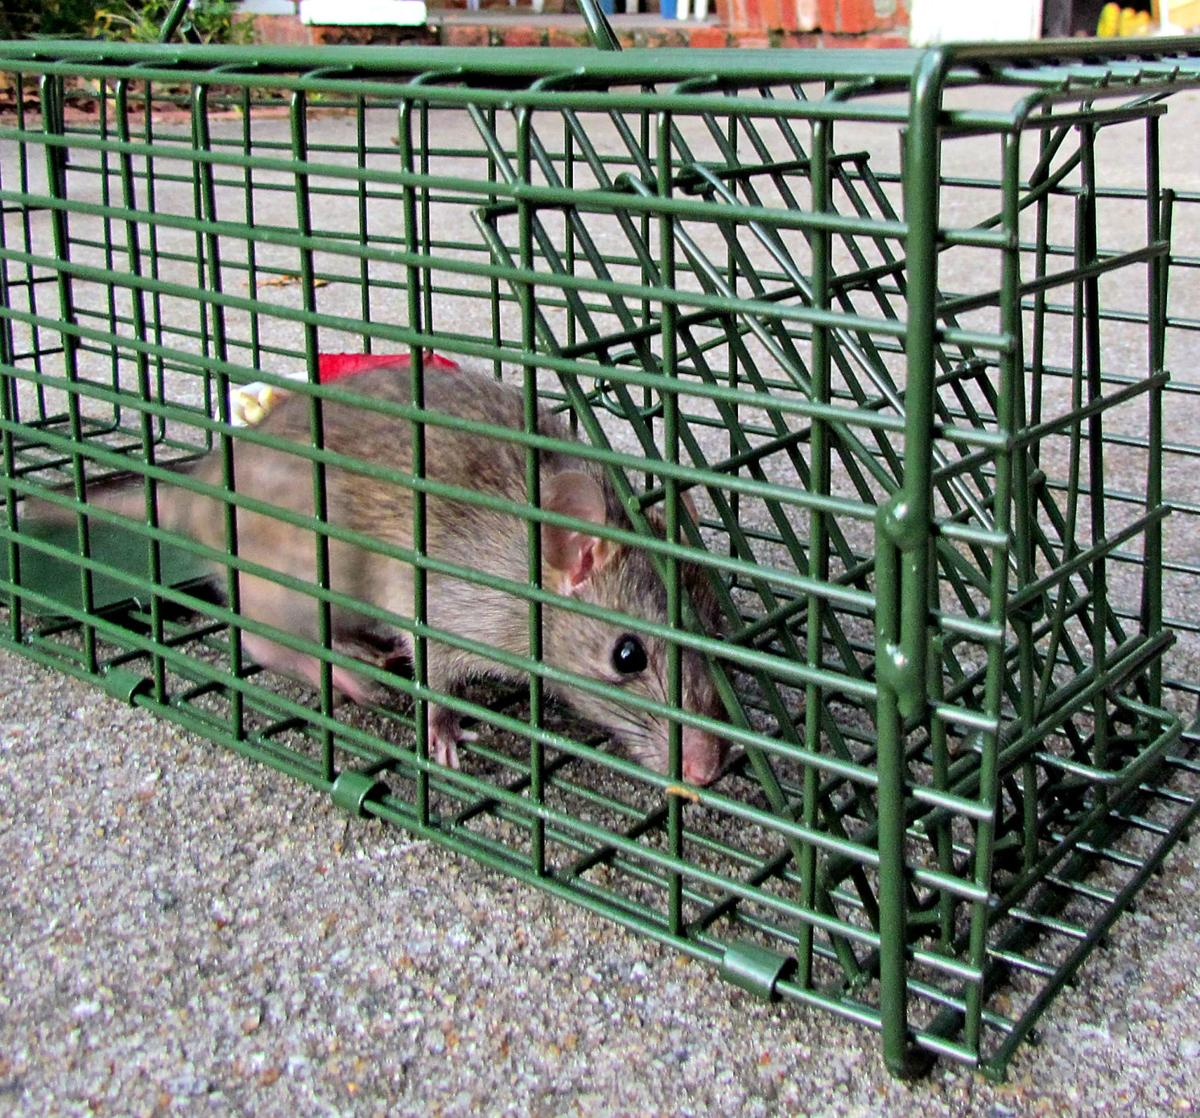 The cold of winter in Charleston brings unwelcome rodent